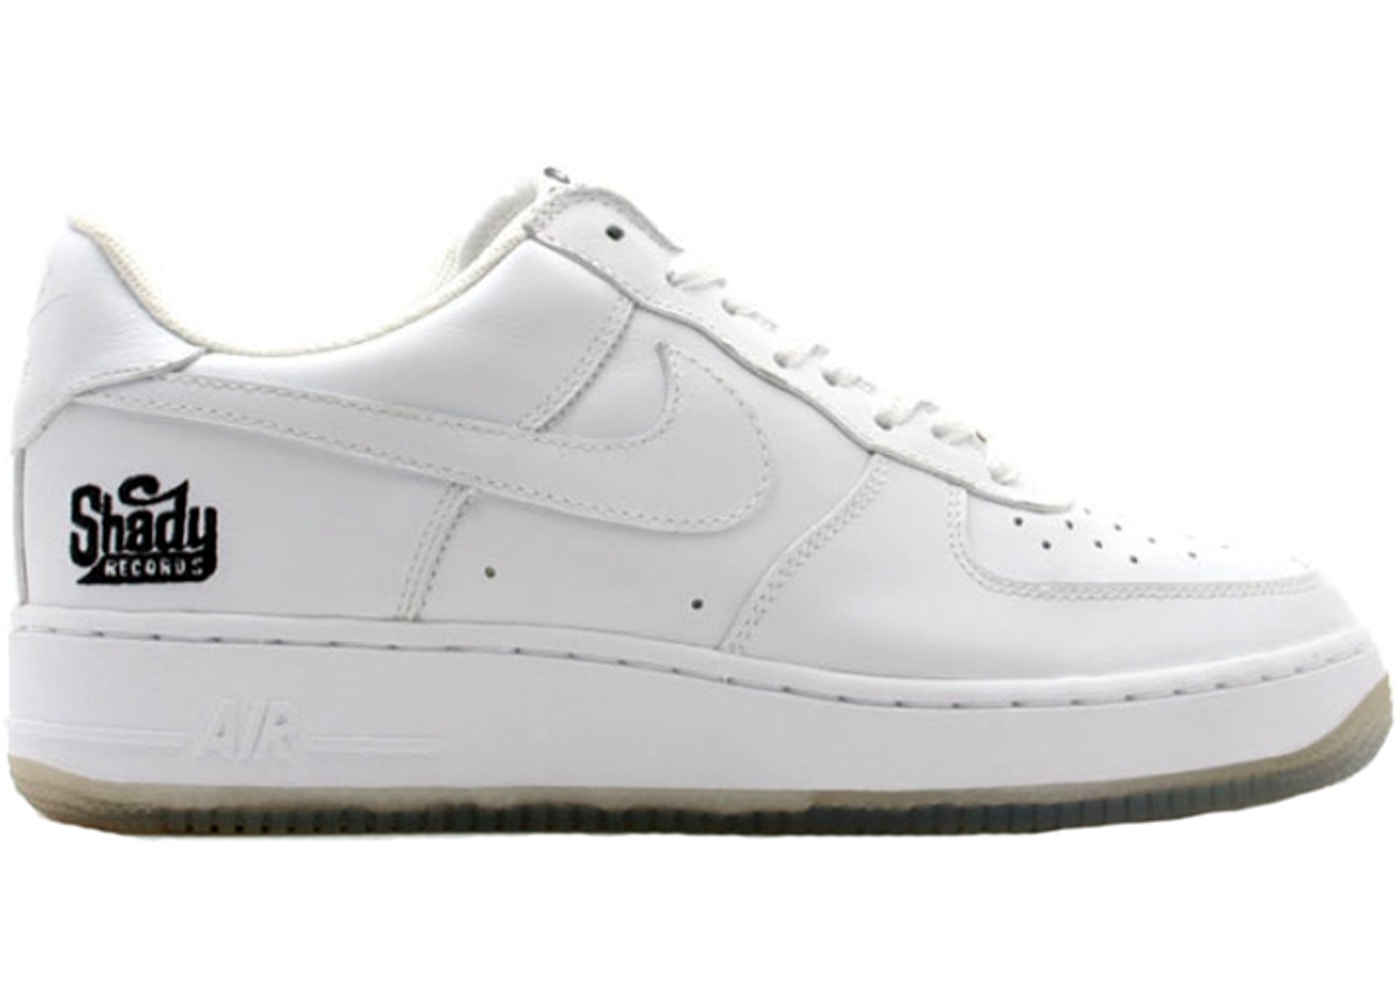 buy online d2310 00e61 Air Force 1 Low Shady Records White - 306033-112